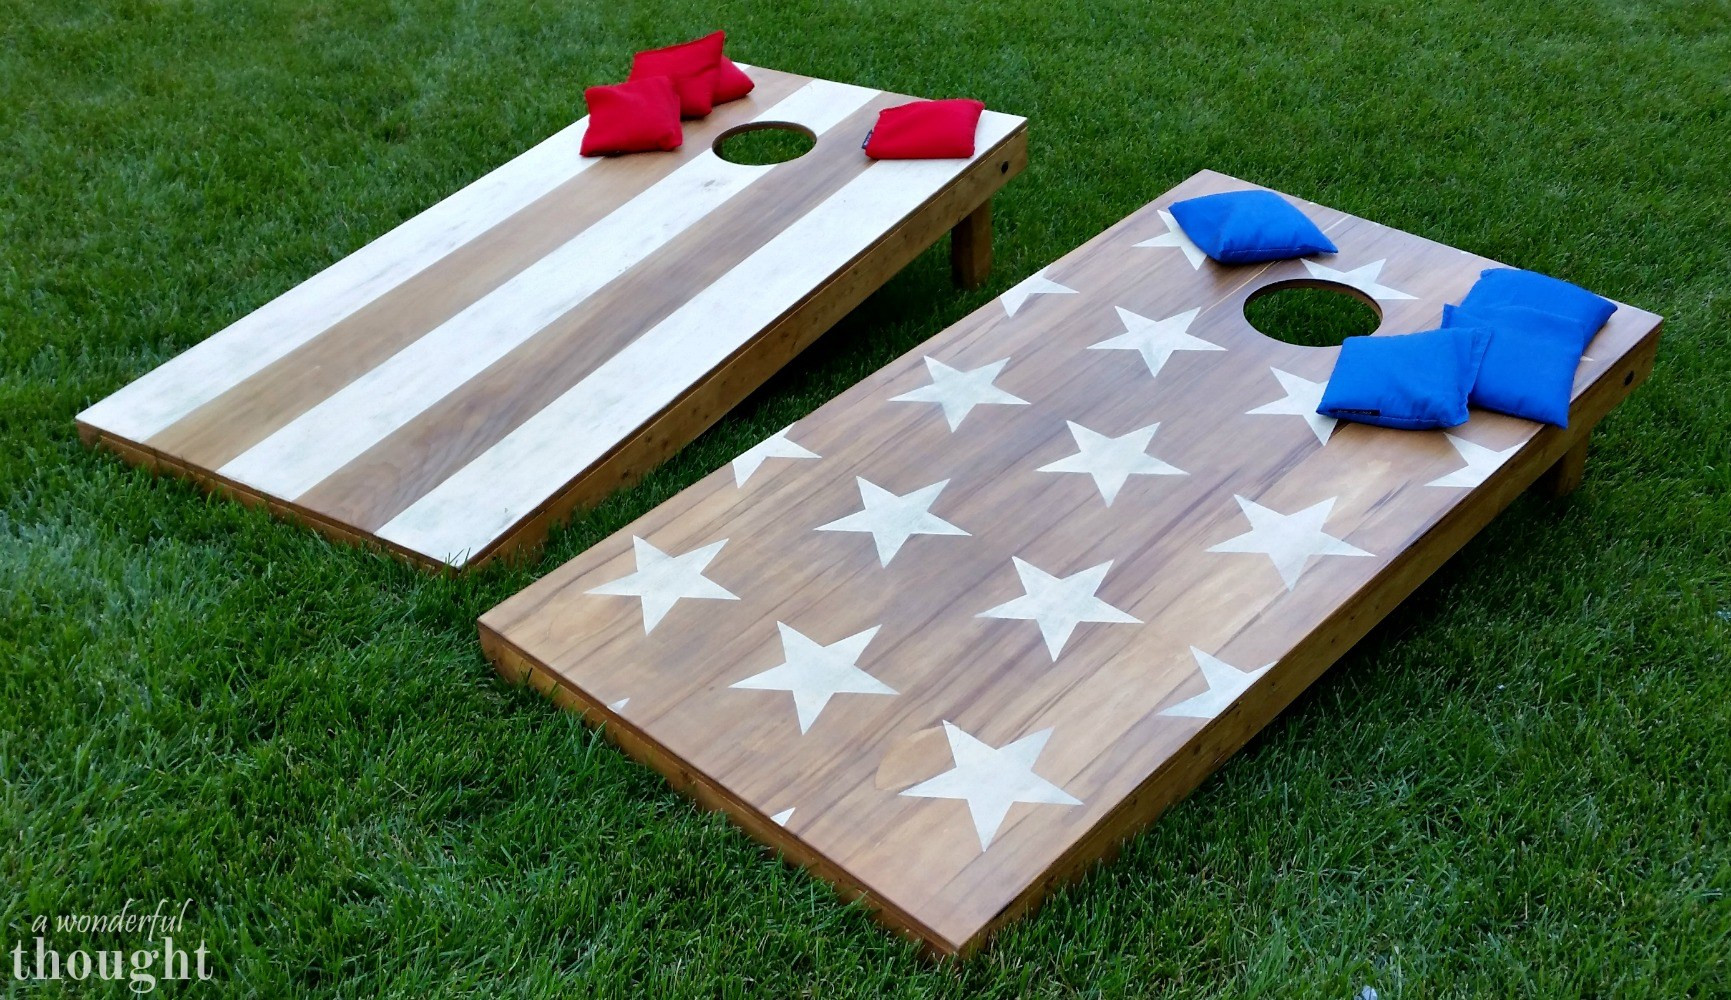 Best ideas about Backyard Games DIY . Save or Pin Yard Games 10 Giant Options You Can DIY from Yahtzee to Now.